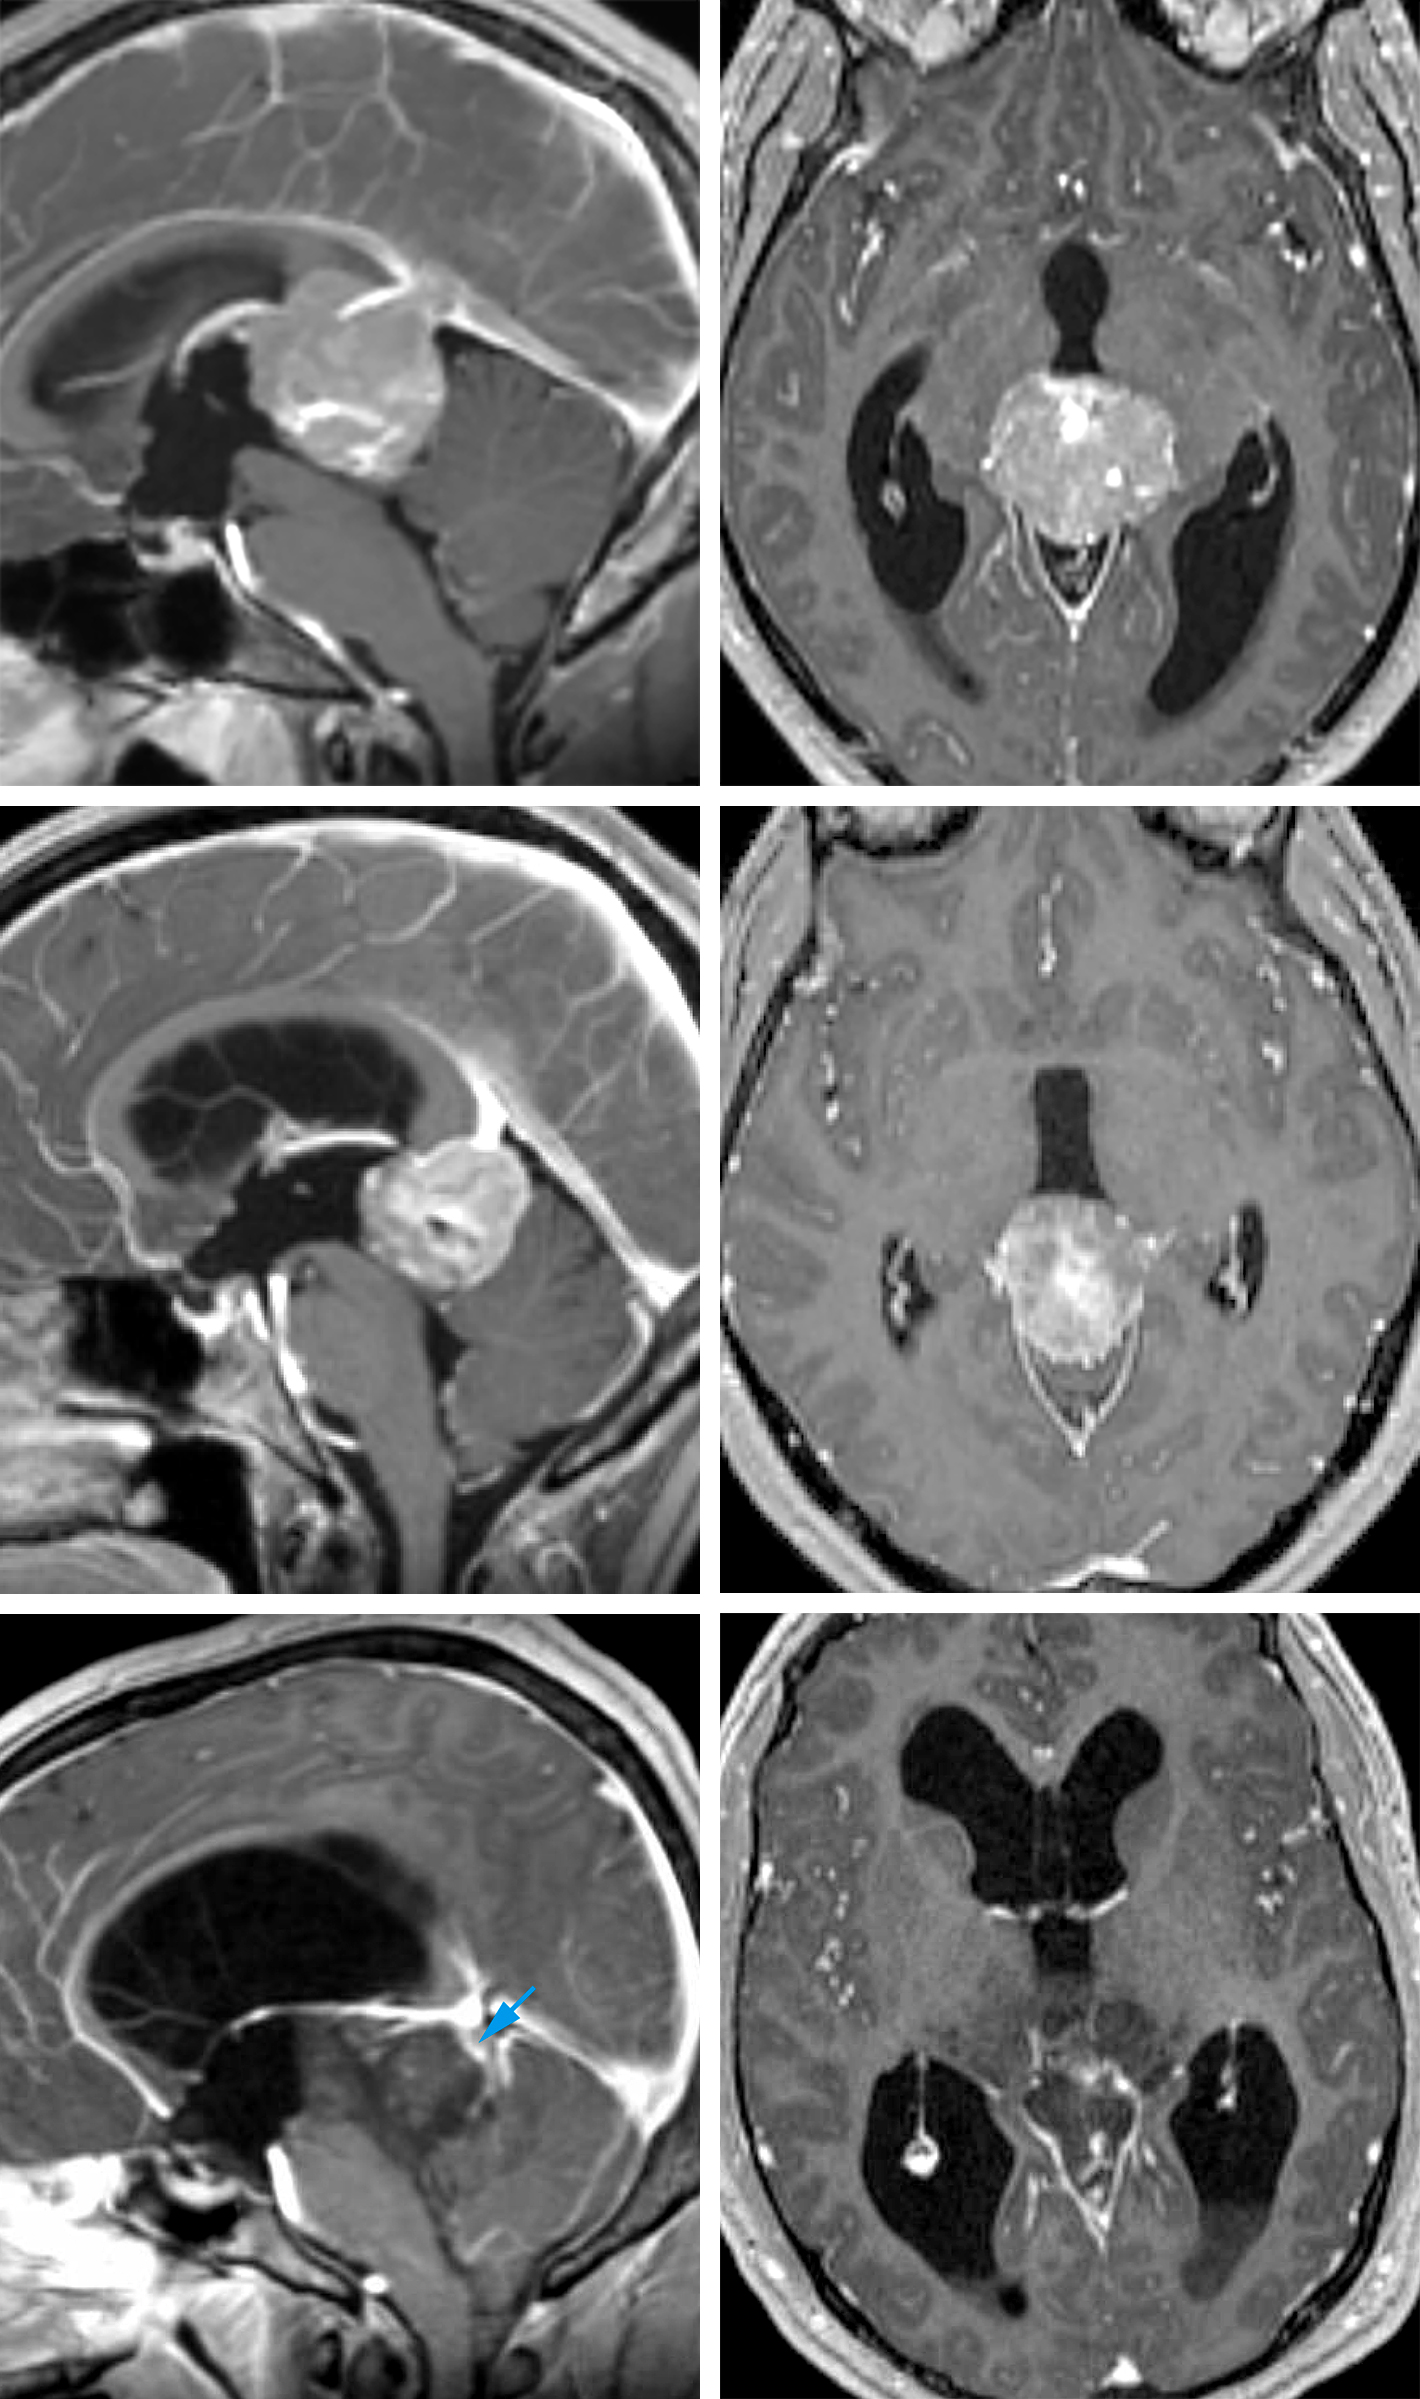 Figure 3: Different tumor subtypes in the pineal region are demonstrated. The top images show a germinoma in a young boy; the middle images belong to an adult patient with a pineoblastoma; and the bottom images show a hemorrhagic pilocytic astrocytoma. Note that in the images of the bottom row, the deep diencephalic veins are paradoxically displaced posteriorly (blue arrow). This important preoperative finding will affect the choice of operative approach and intraoperative dissection methodology. If the operator does not recognize this unusual location of the veins, the risk of injury to the veins during exposure and dissection is significant. The imaging similarities between the tumors in the top two rows prevent any reliable preoperative diagnosis without adjuvant diagnostic tools.